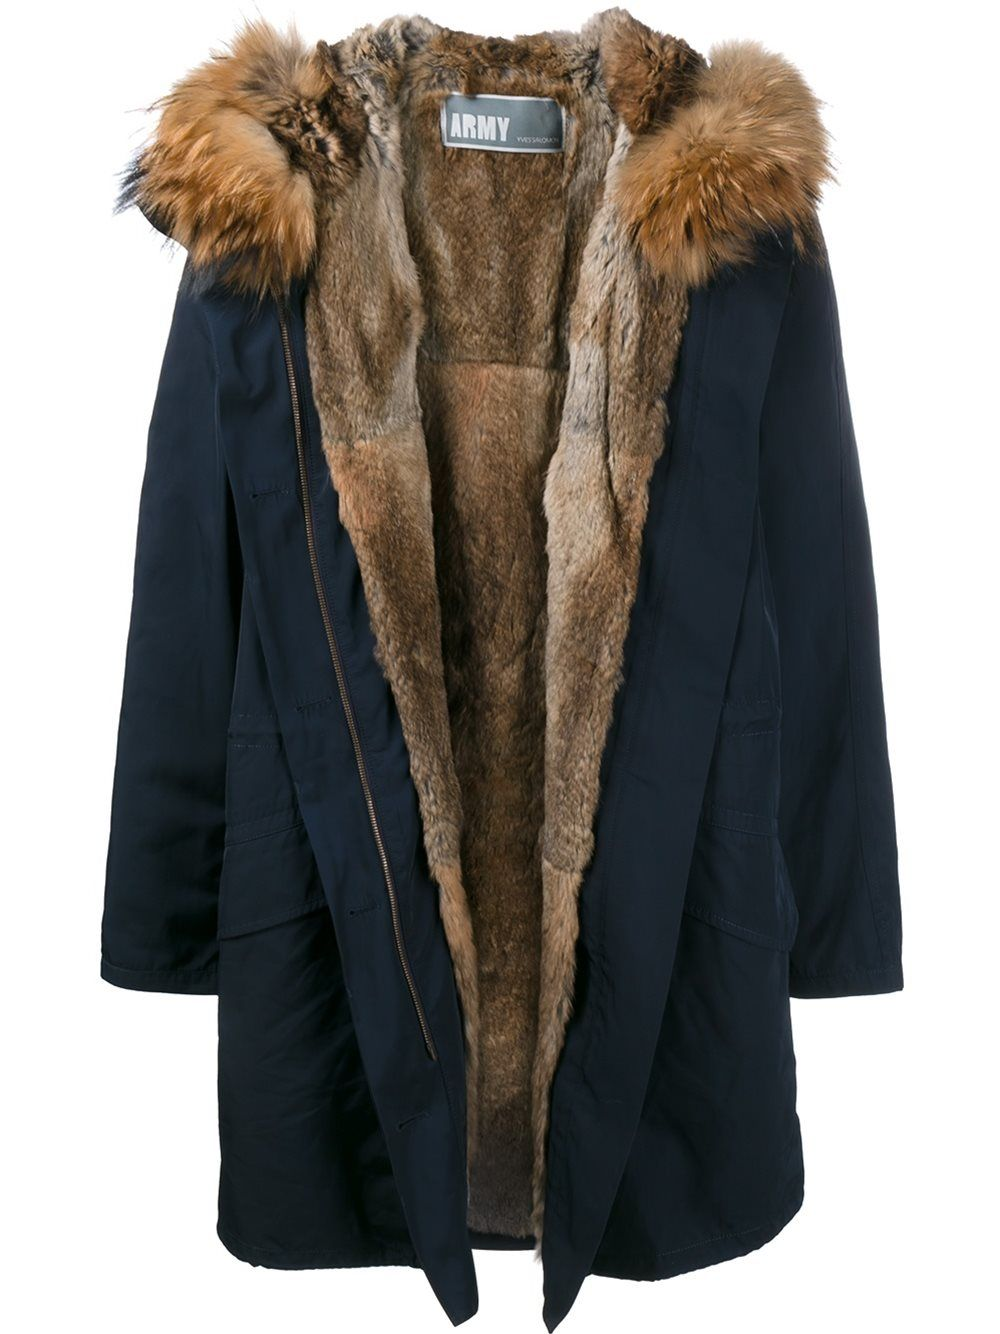 Army Yves Salomon fur lined parka Blue Parka, Blue Fur Coat, Fur Lined Coat bb2b98e926d